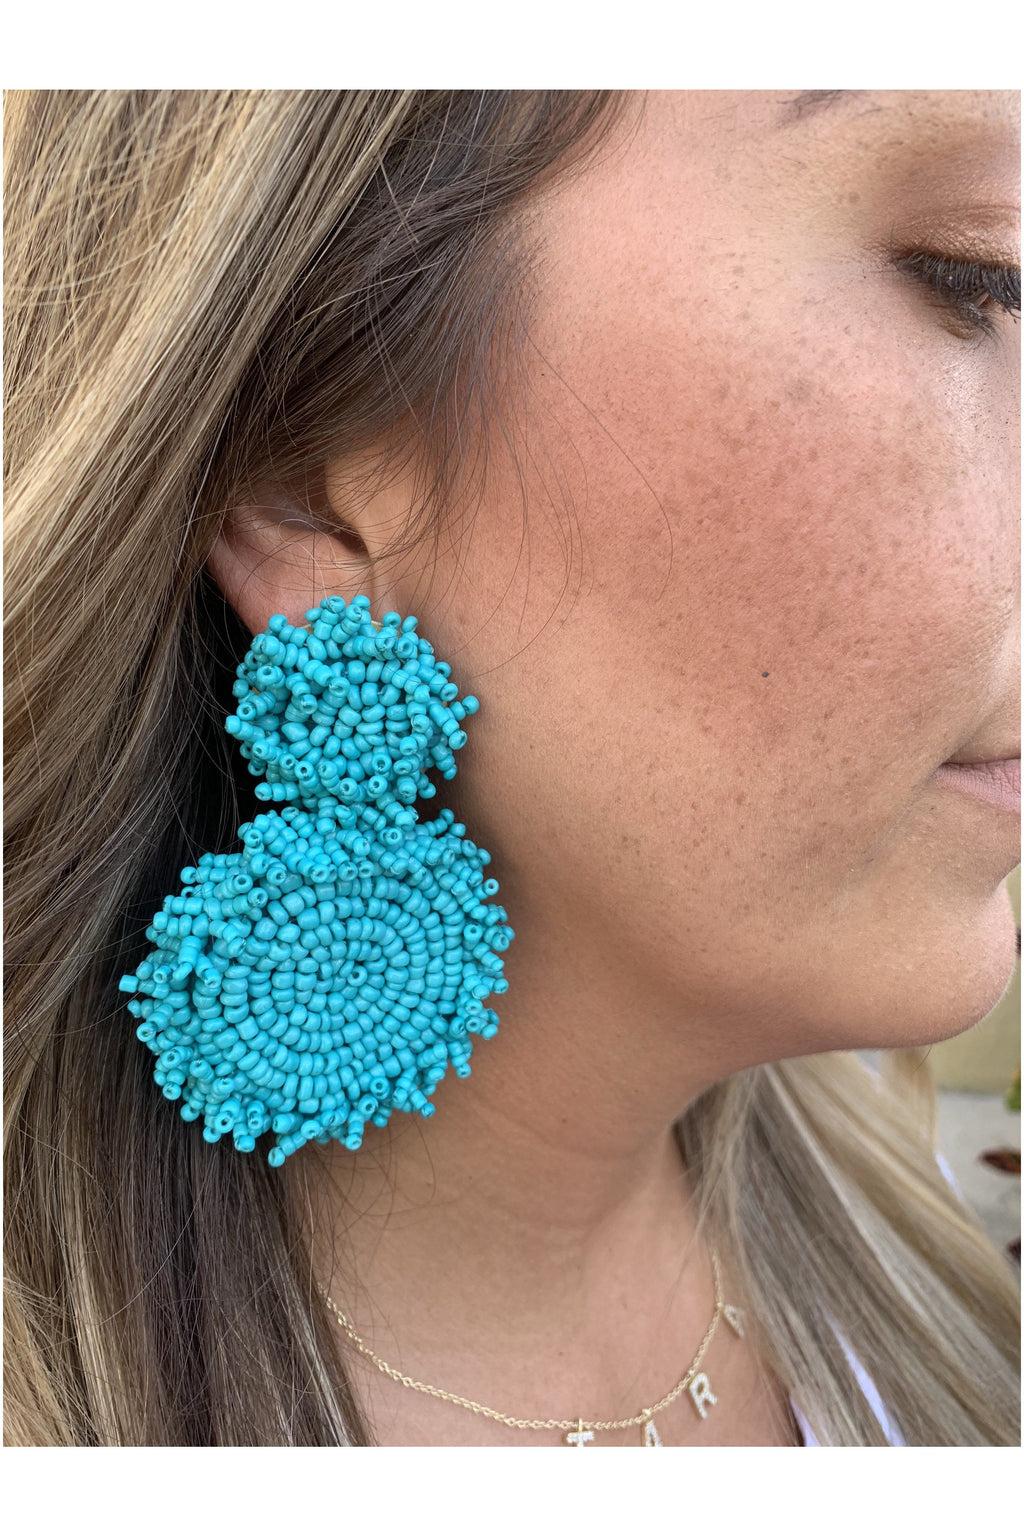 Bombay Earrings in Teal - Indigo Closet